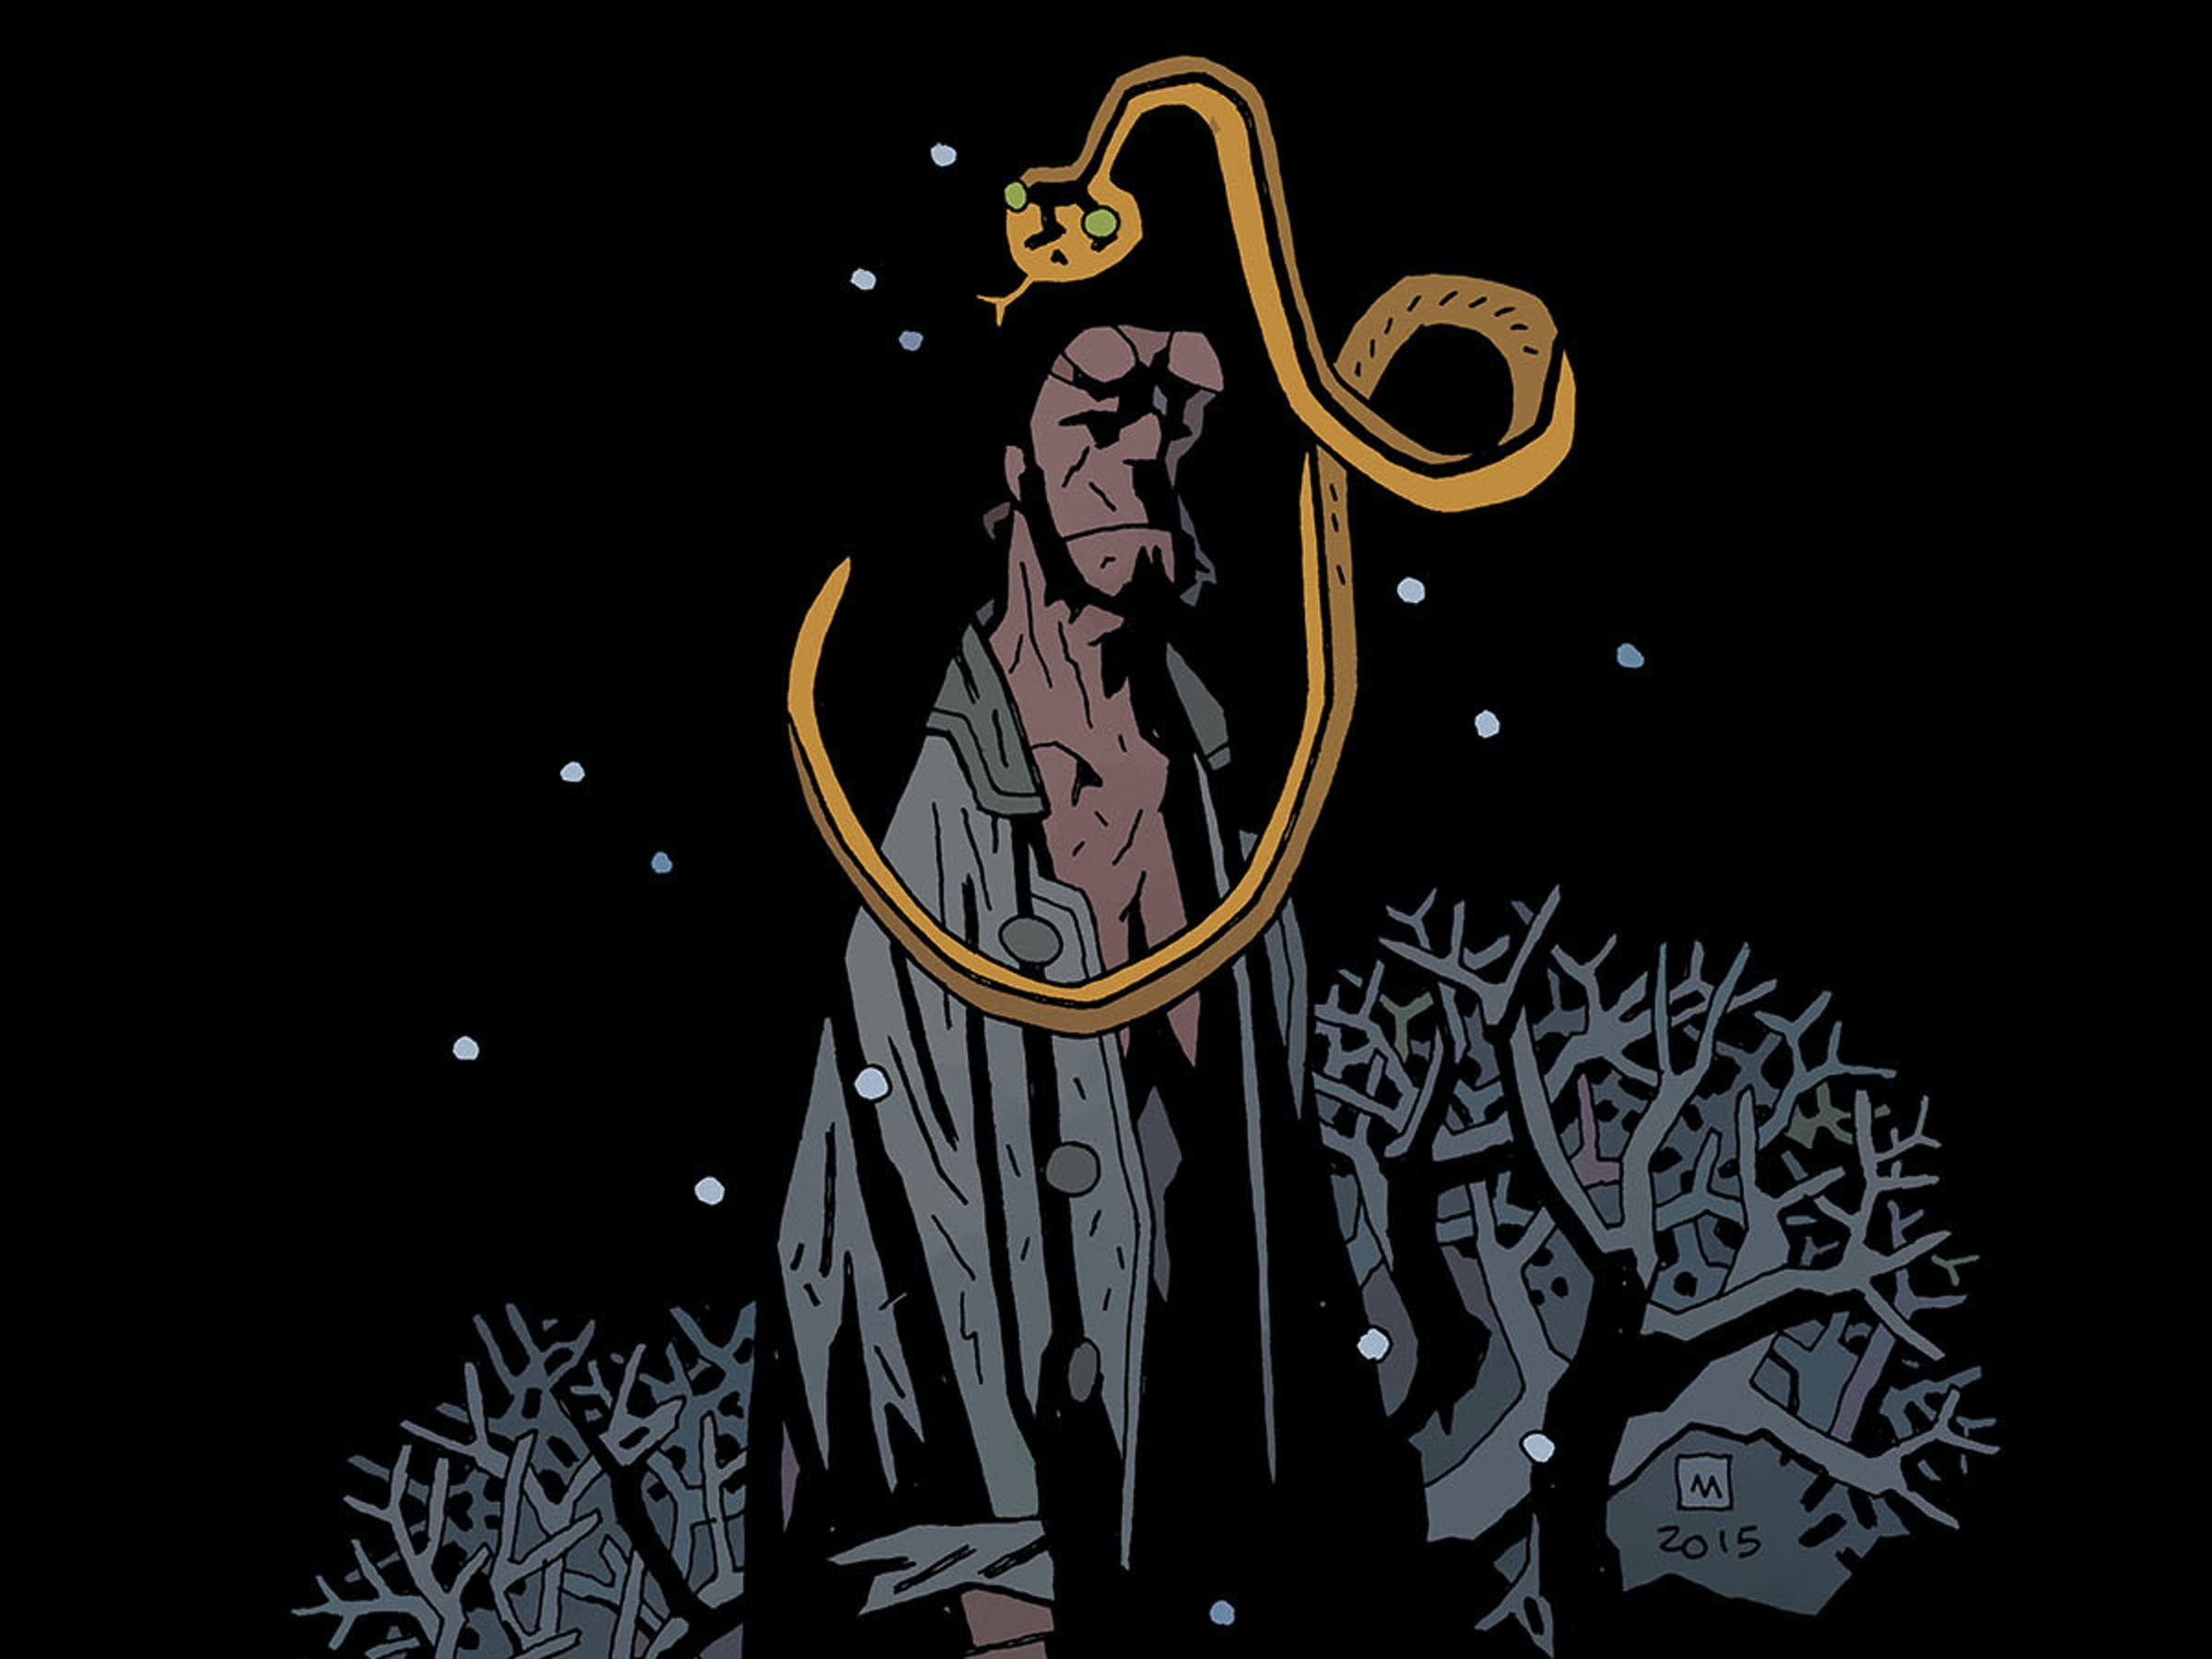 Hellboy Creator Mike Mignola On Damnation As A State Of